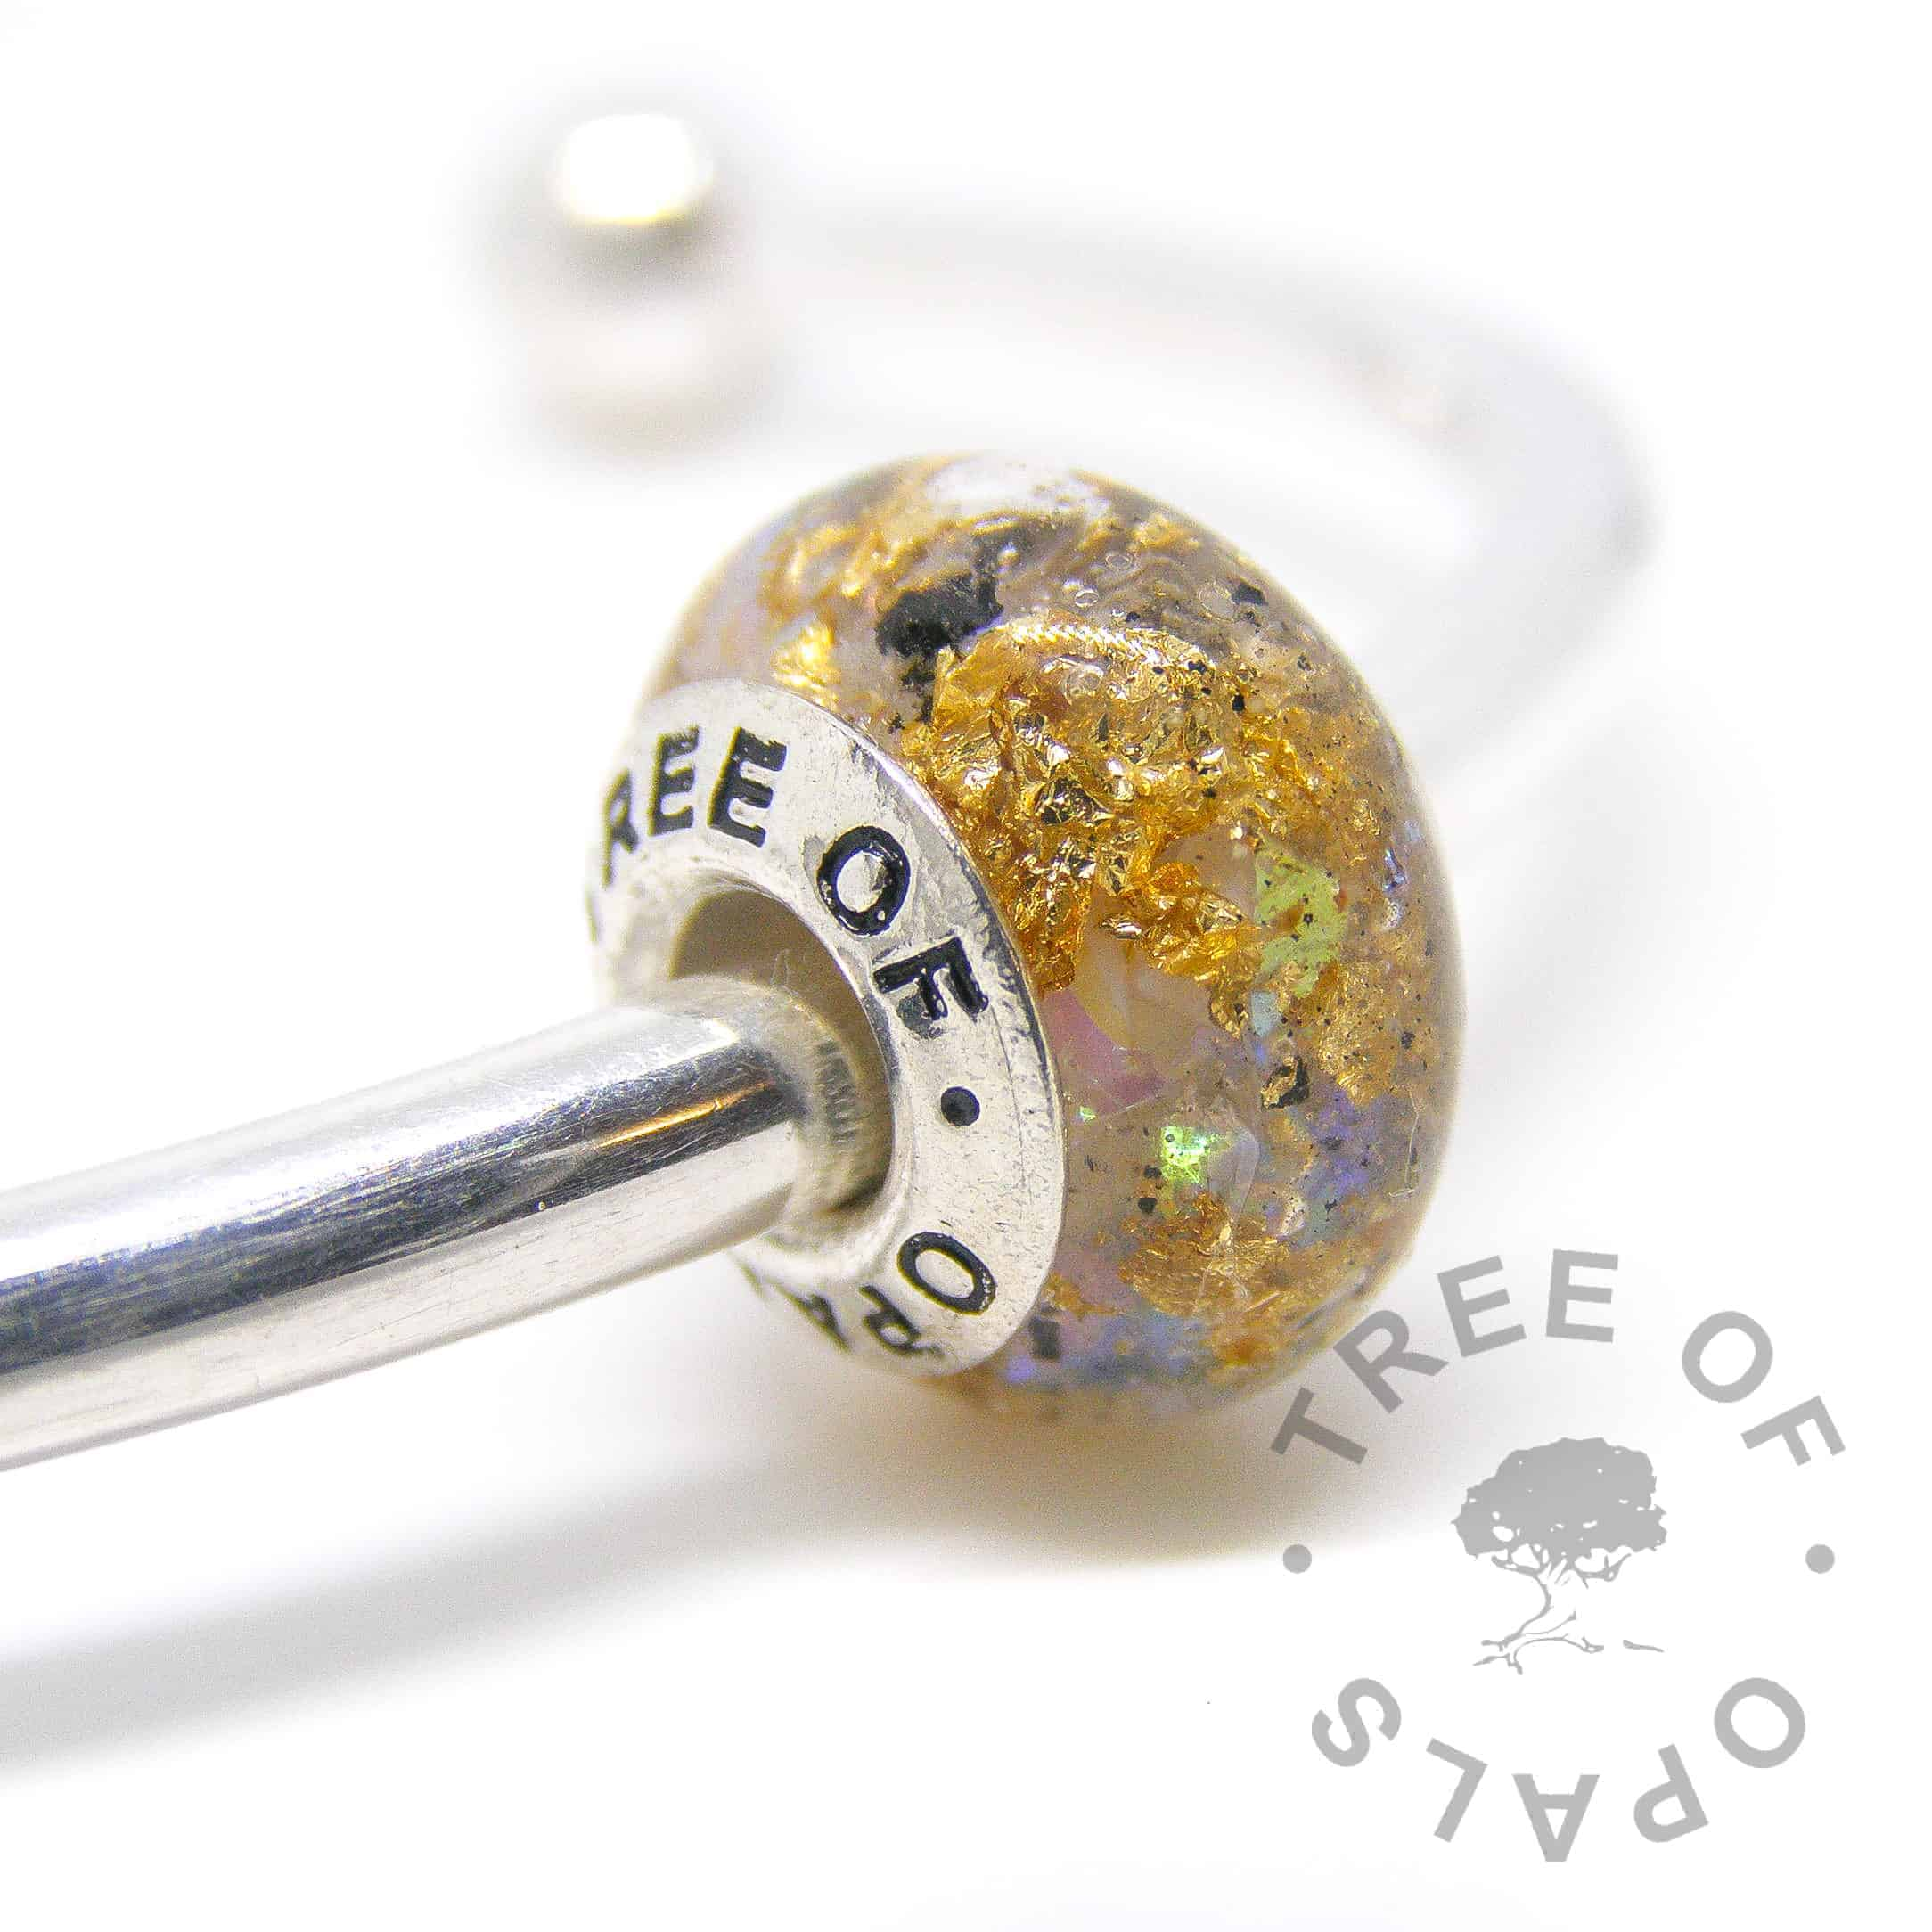 cremation ashes bead in resin, white opalescent and genuine gold leaf with a solid sterling silver Tree of Opals branded core cremation ash charm